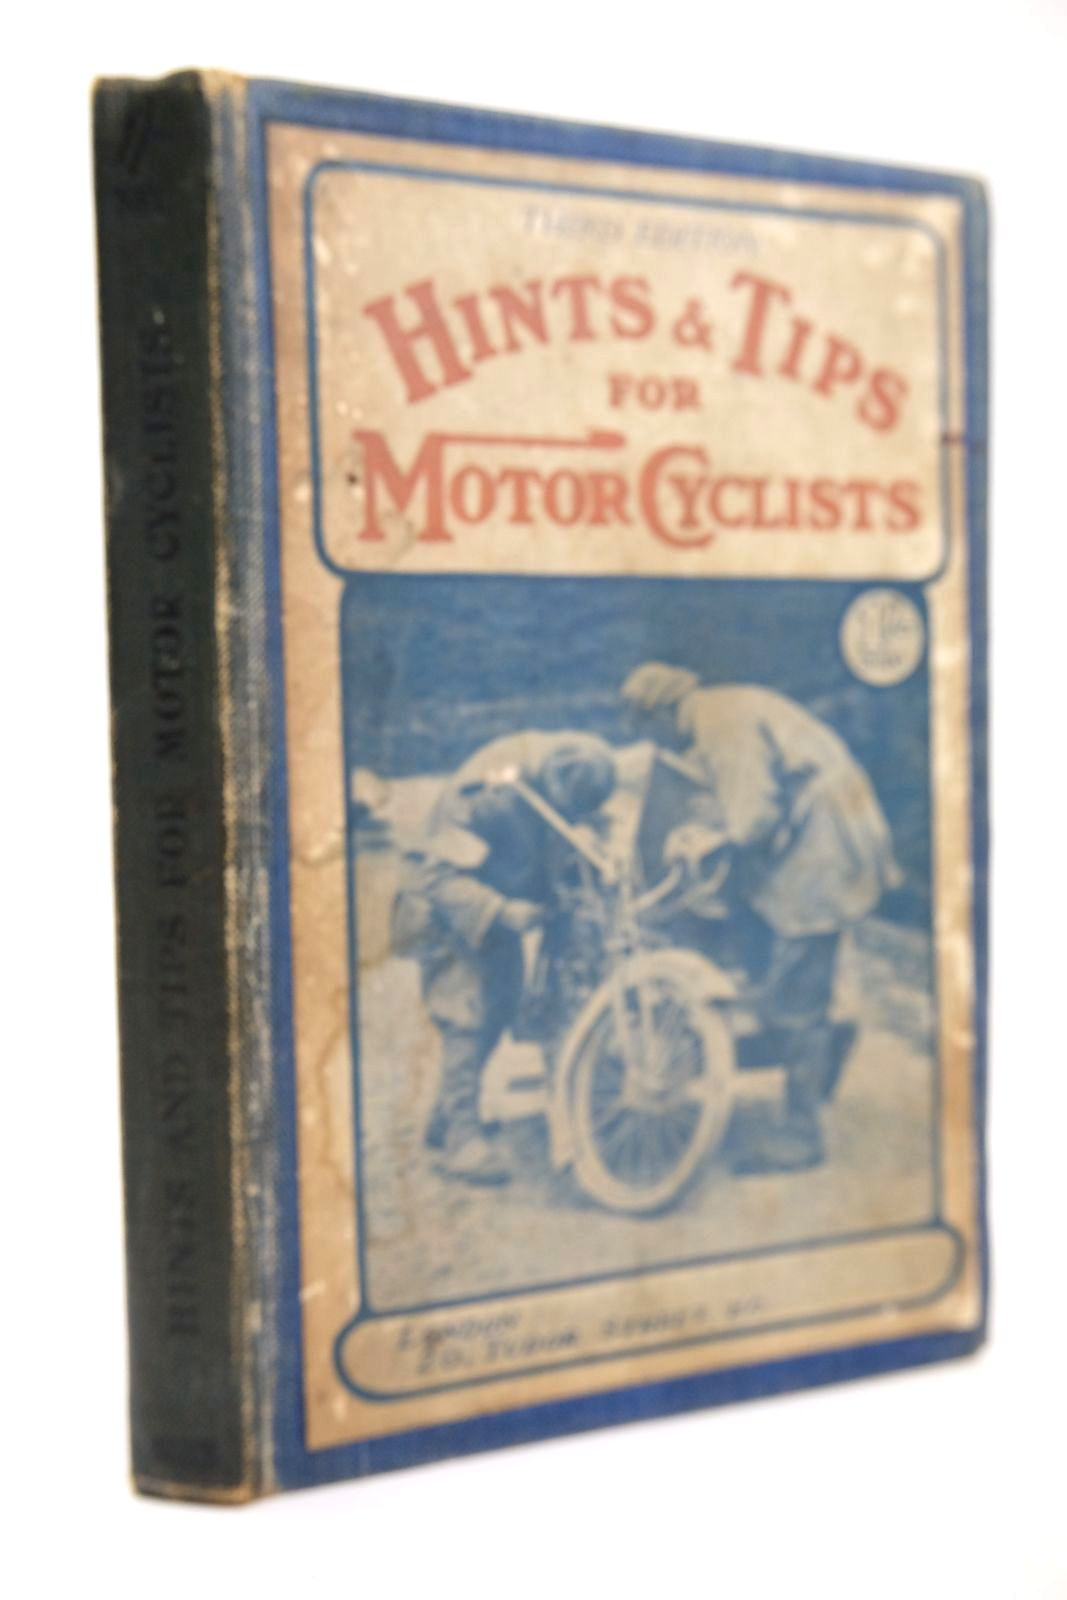 Photo of HINTS & TIPS FOR MOTOR CYCLISTS- Stock Number: 2133361